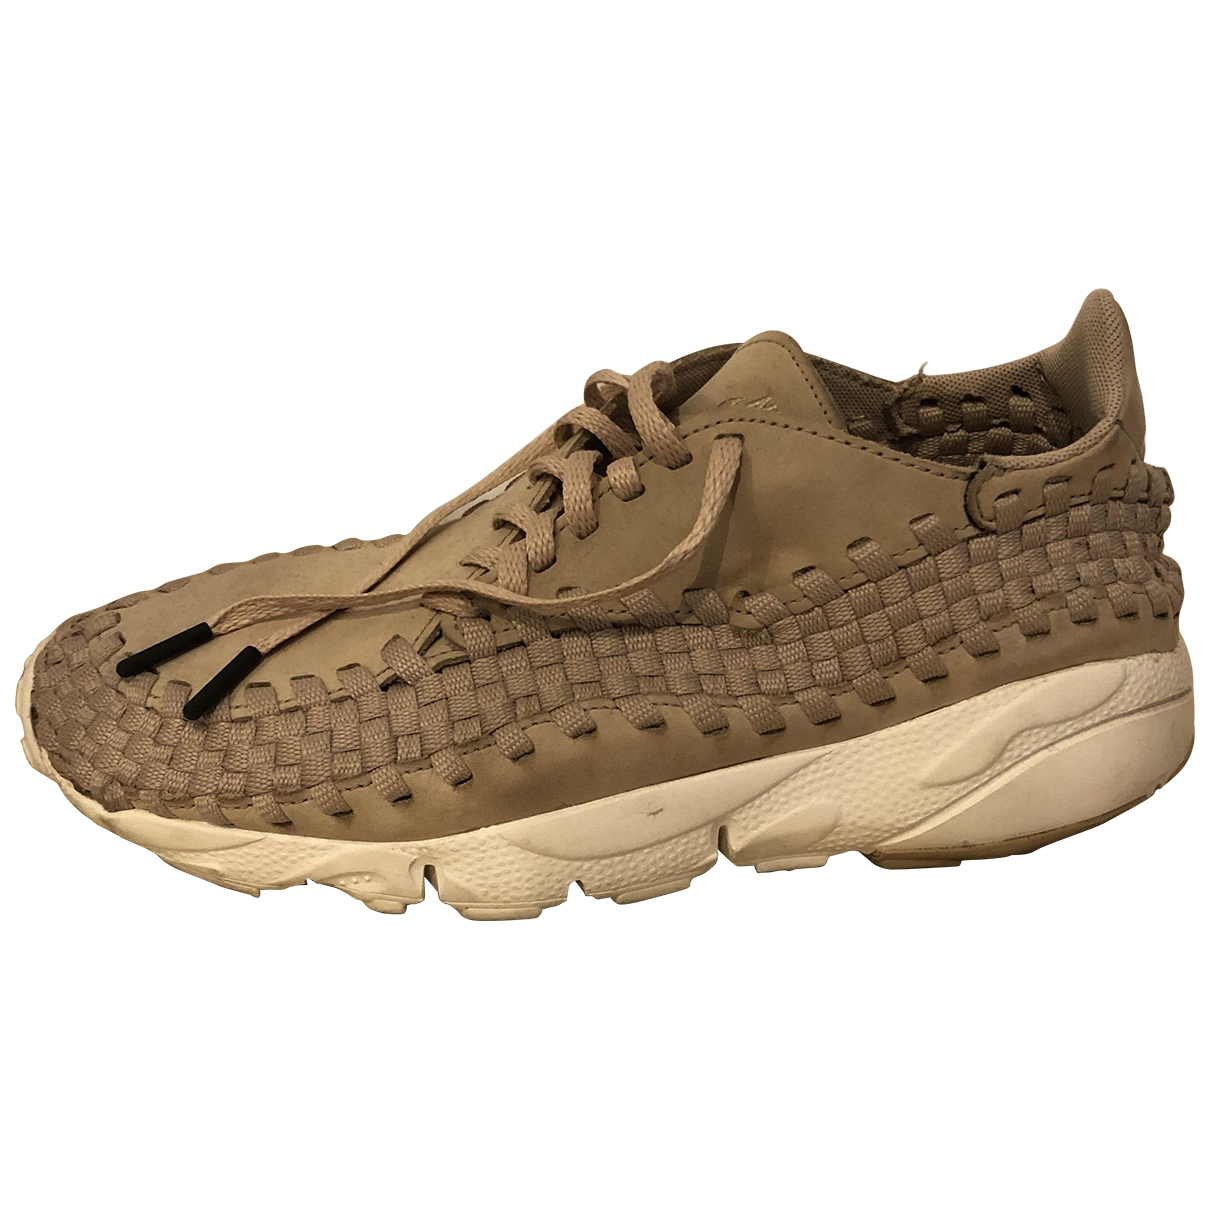 Nike Air Woven Beige Cloth Trainers for Men 40.5 EU